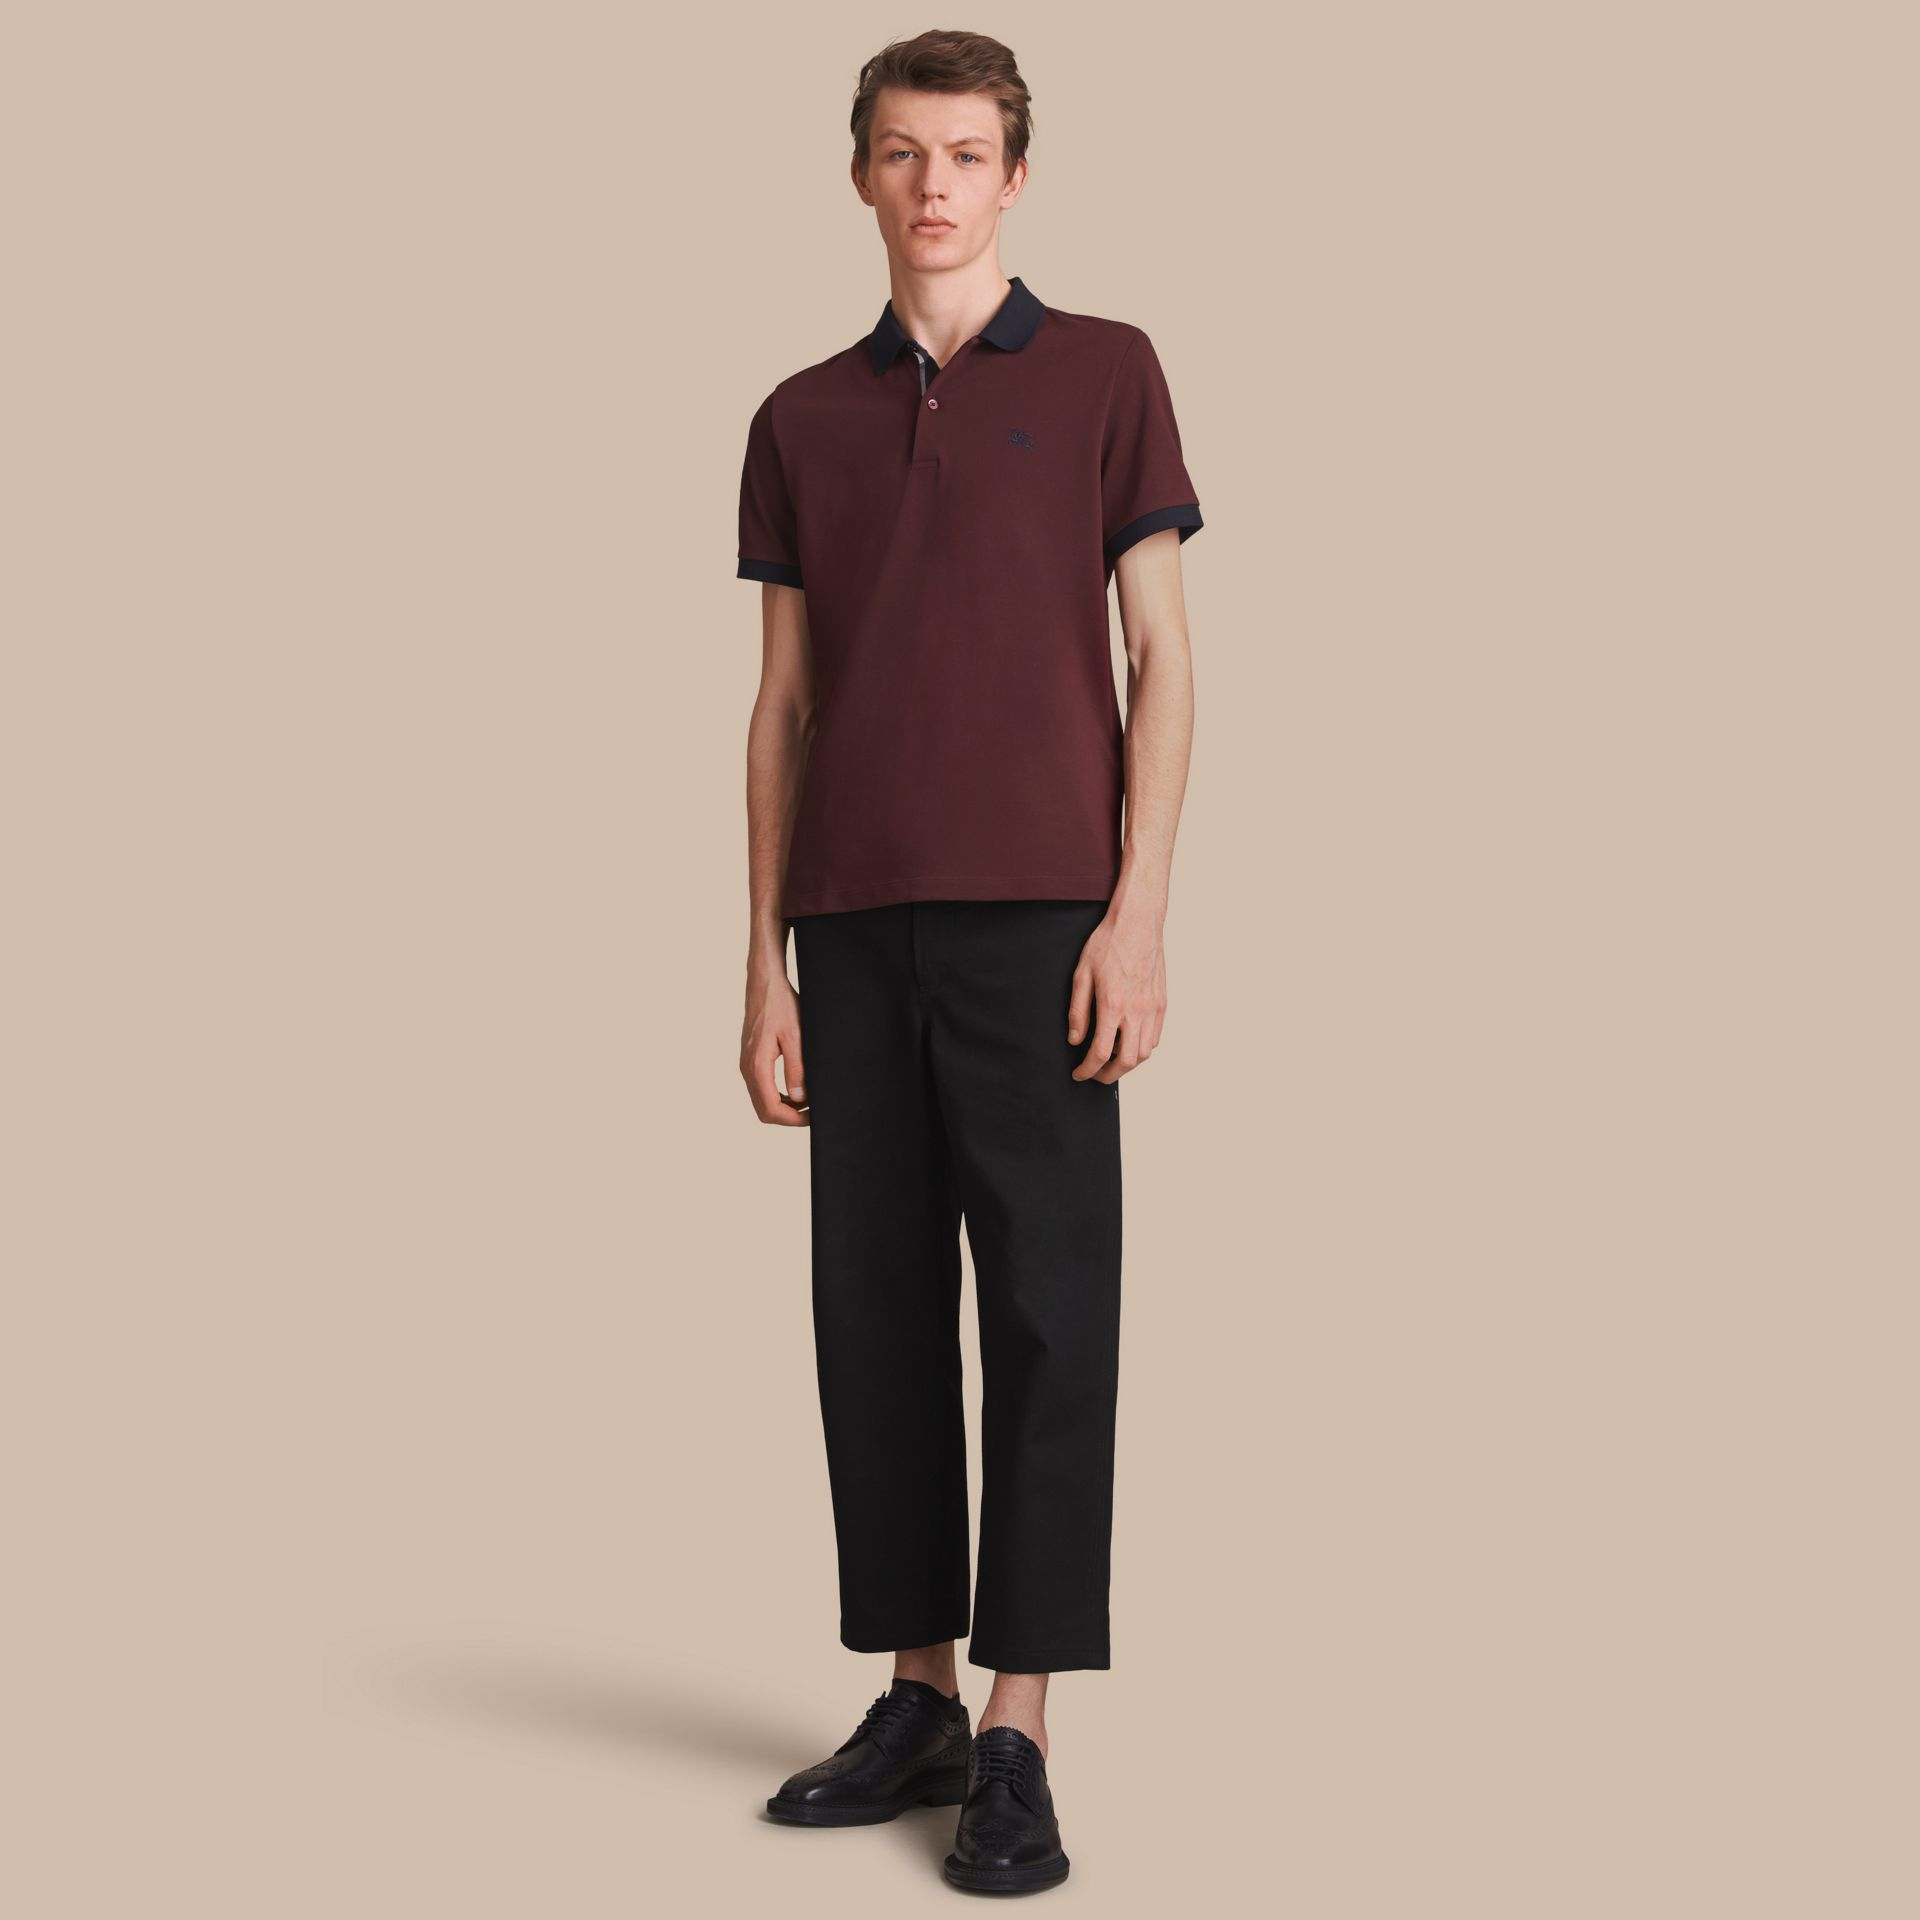 Two-tone Check Placket Cotton Piqué Polo Shirt in Deep Claret - Men | Burberry - gallery image 1